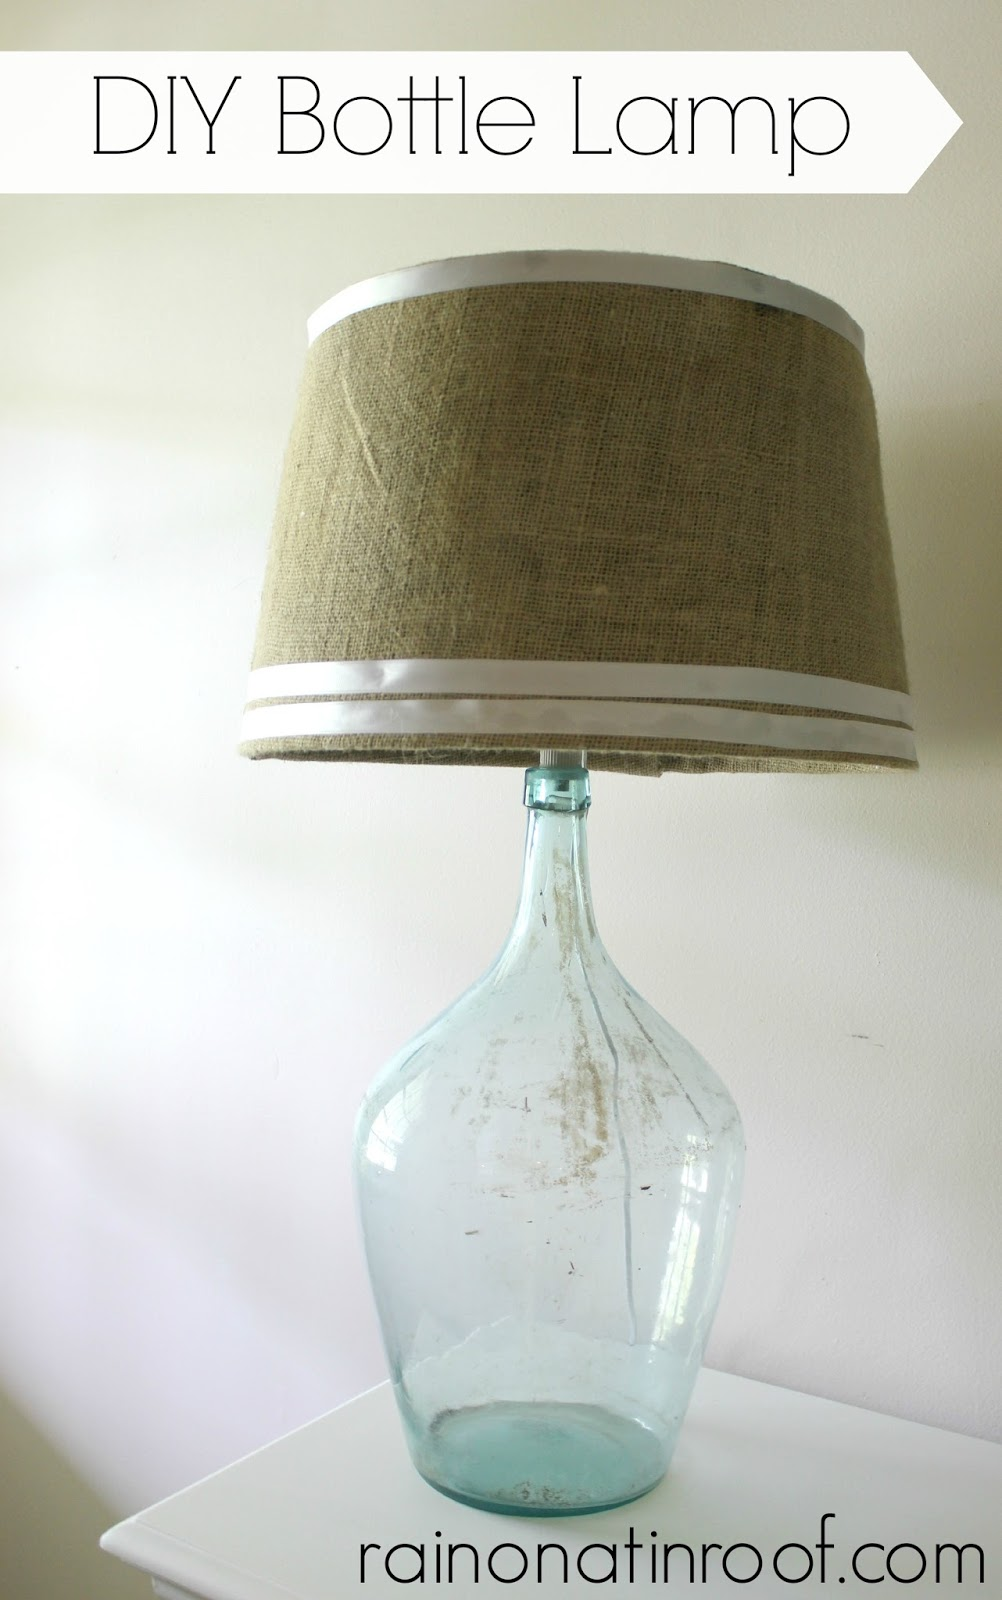 How to Make a Lamp Out of a Bottle (Psst - It's easy!)